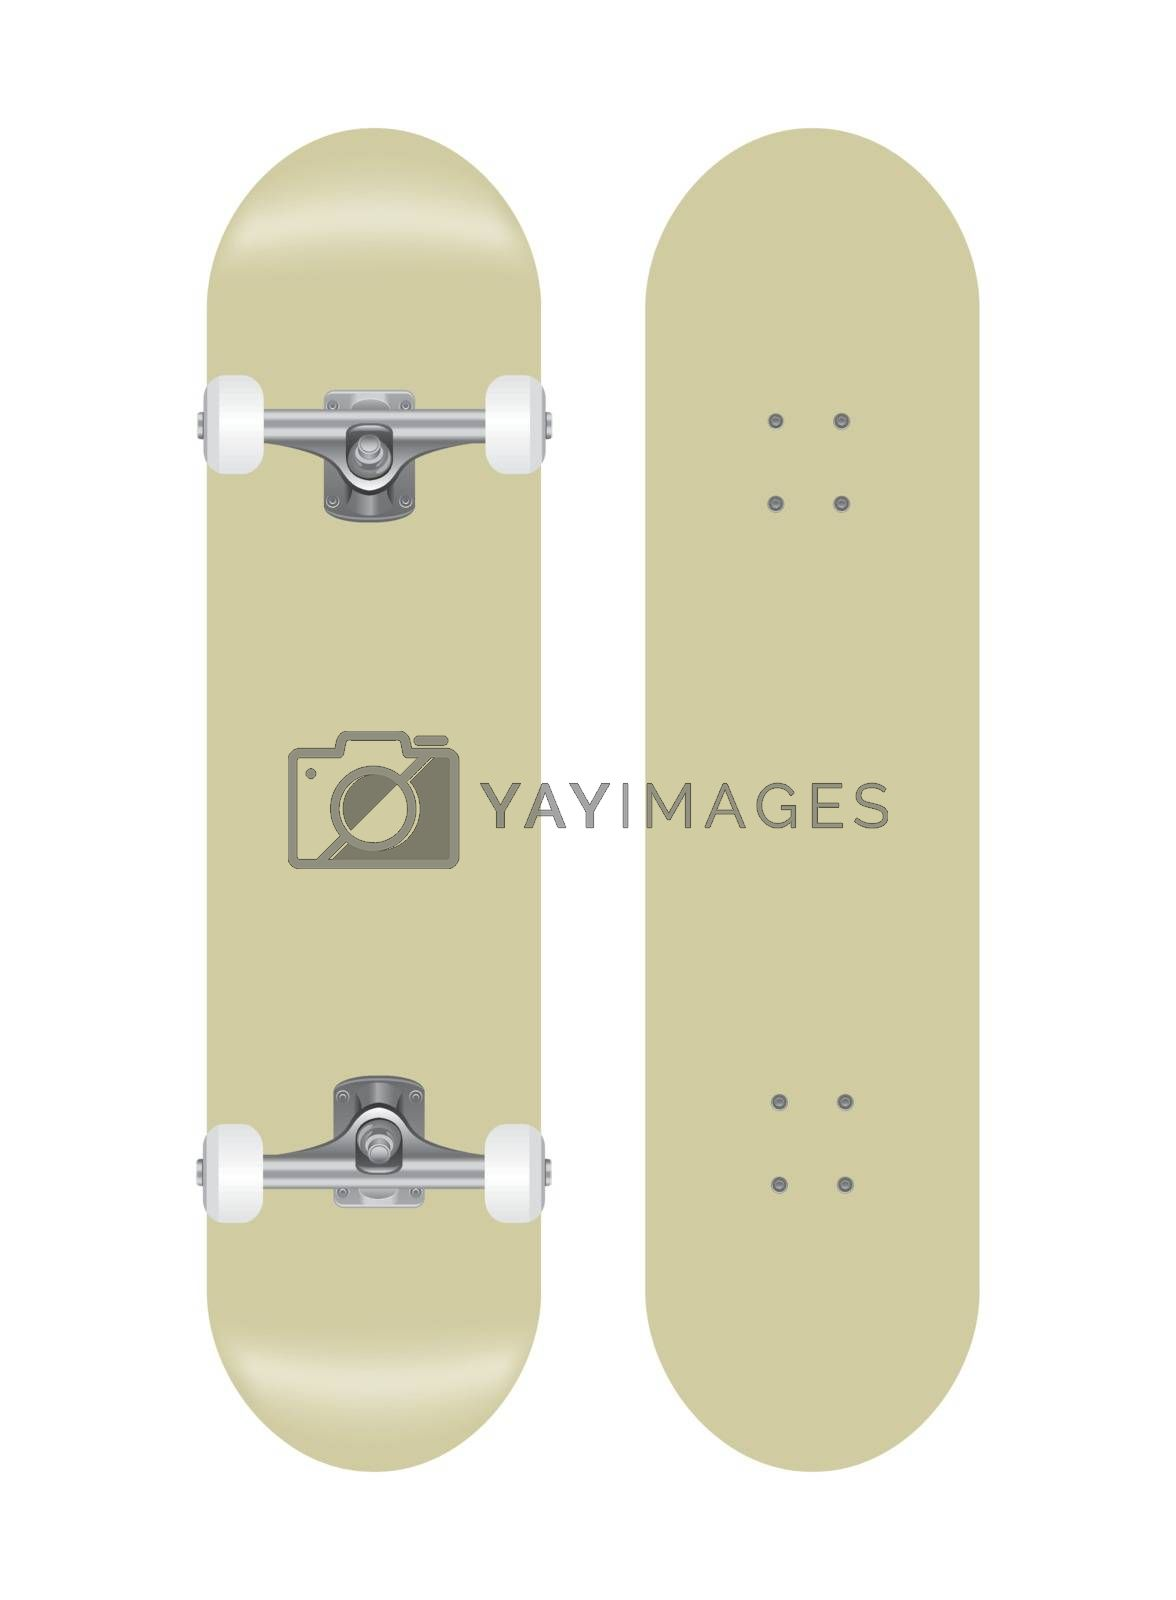 Royalty free image of skateboard vector template illustration by barks